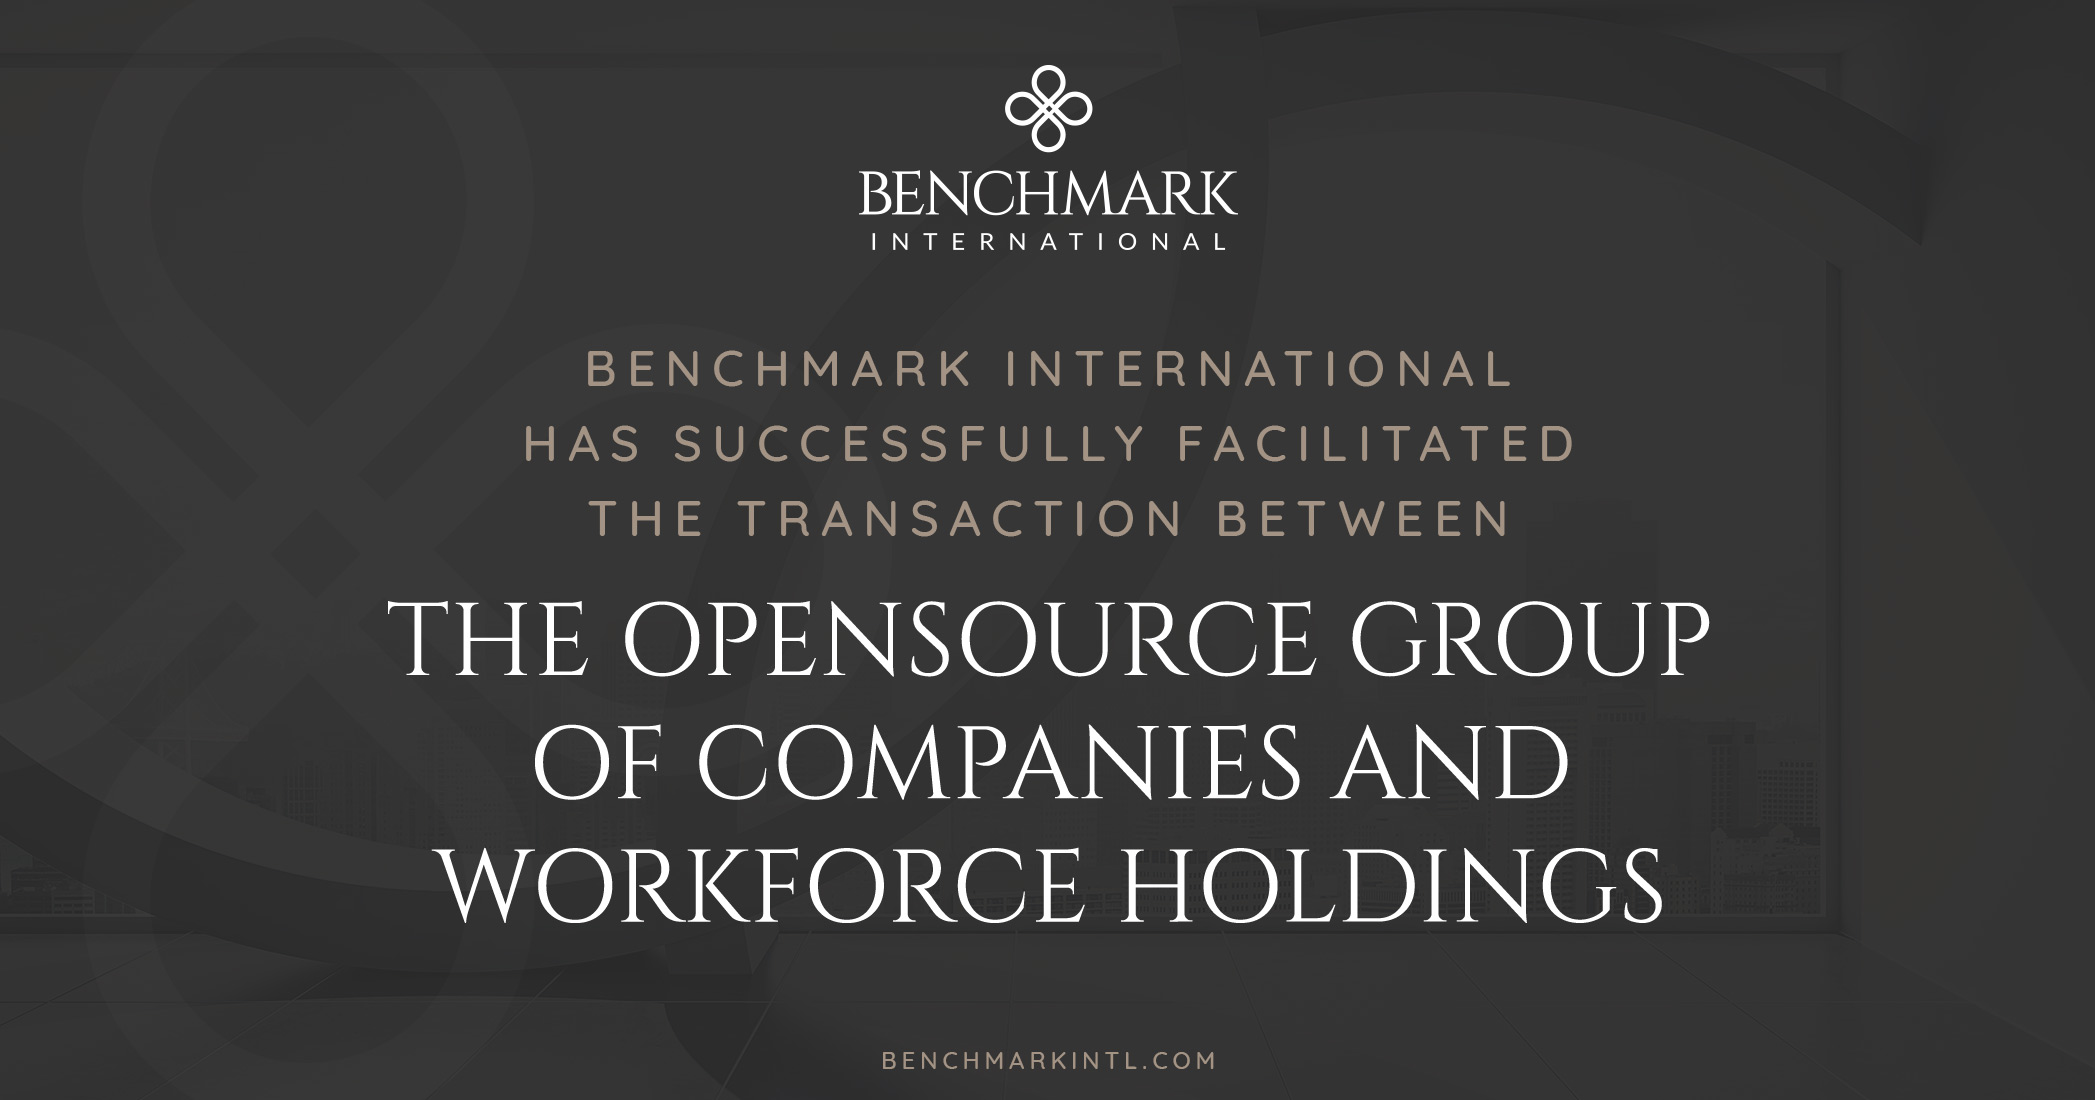 Benchmark International Successfully Facilitated the Transaction Between The OpenSource Group of Companies and Workforce Holdings